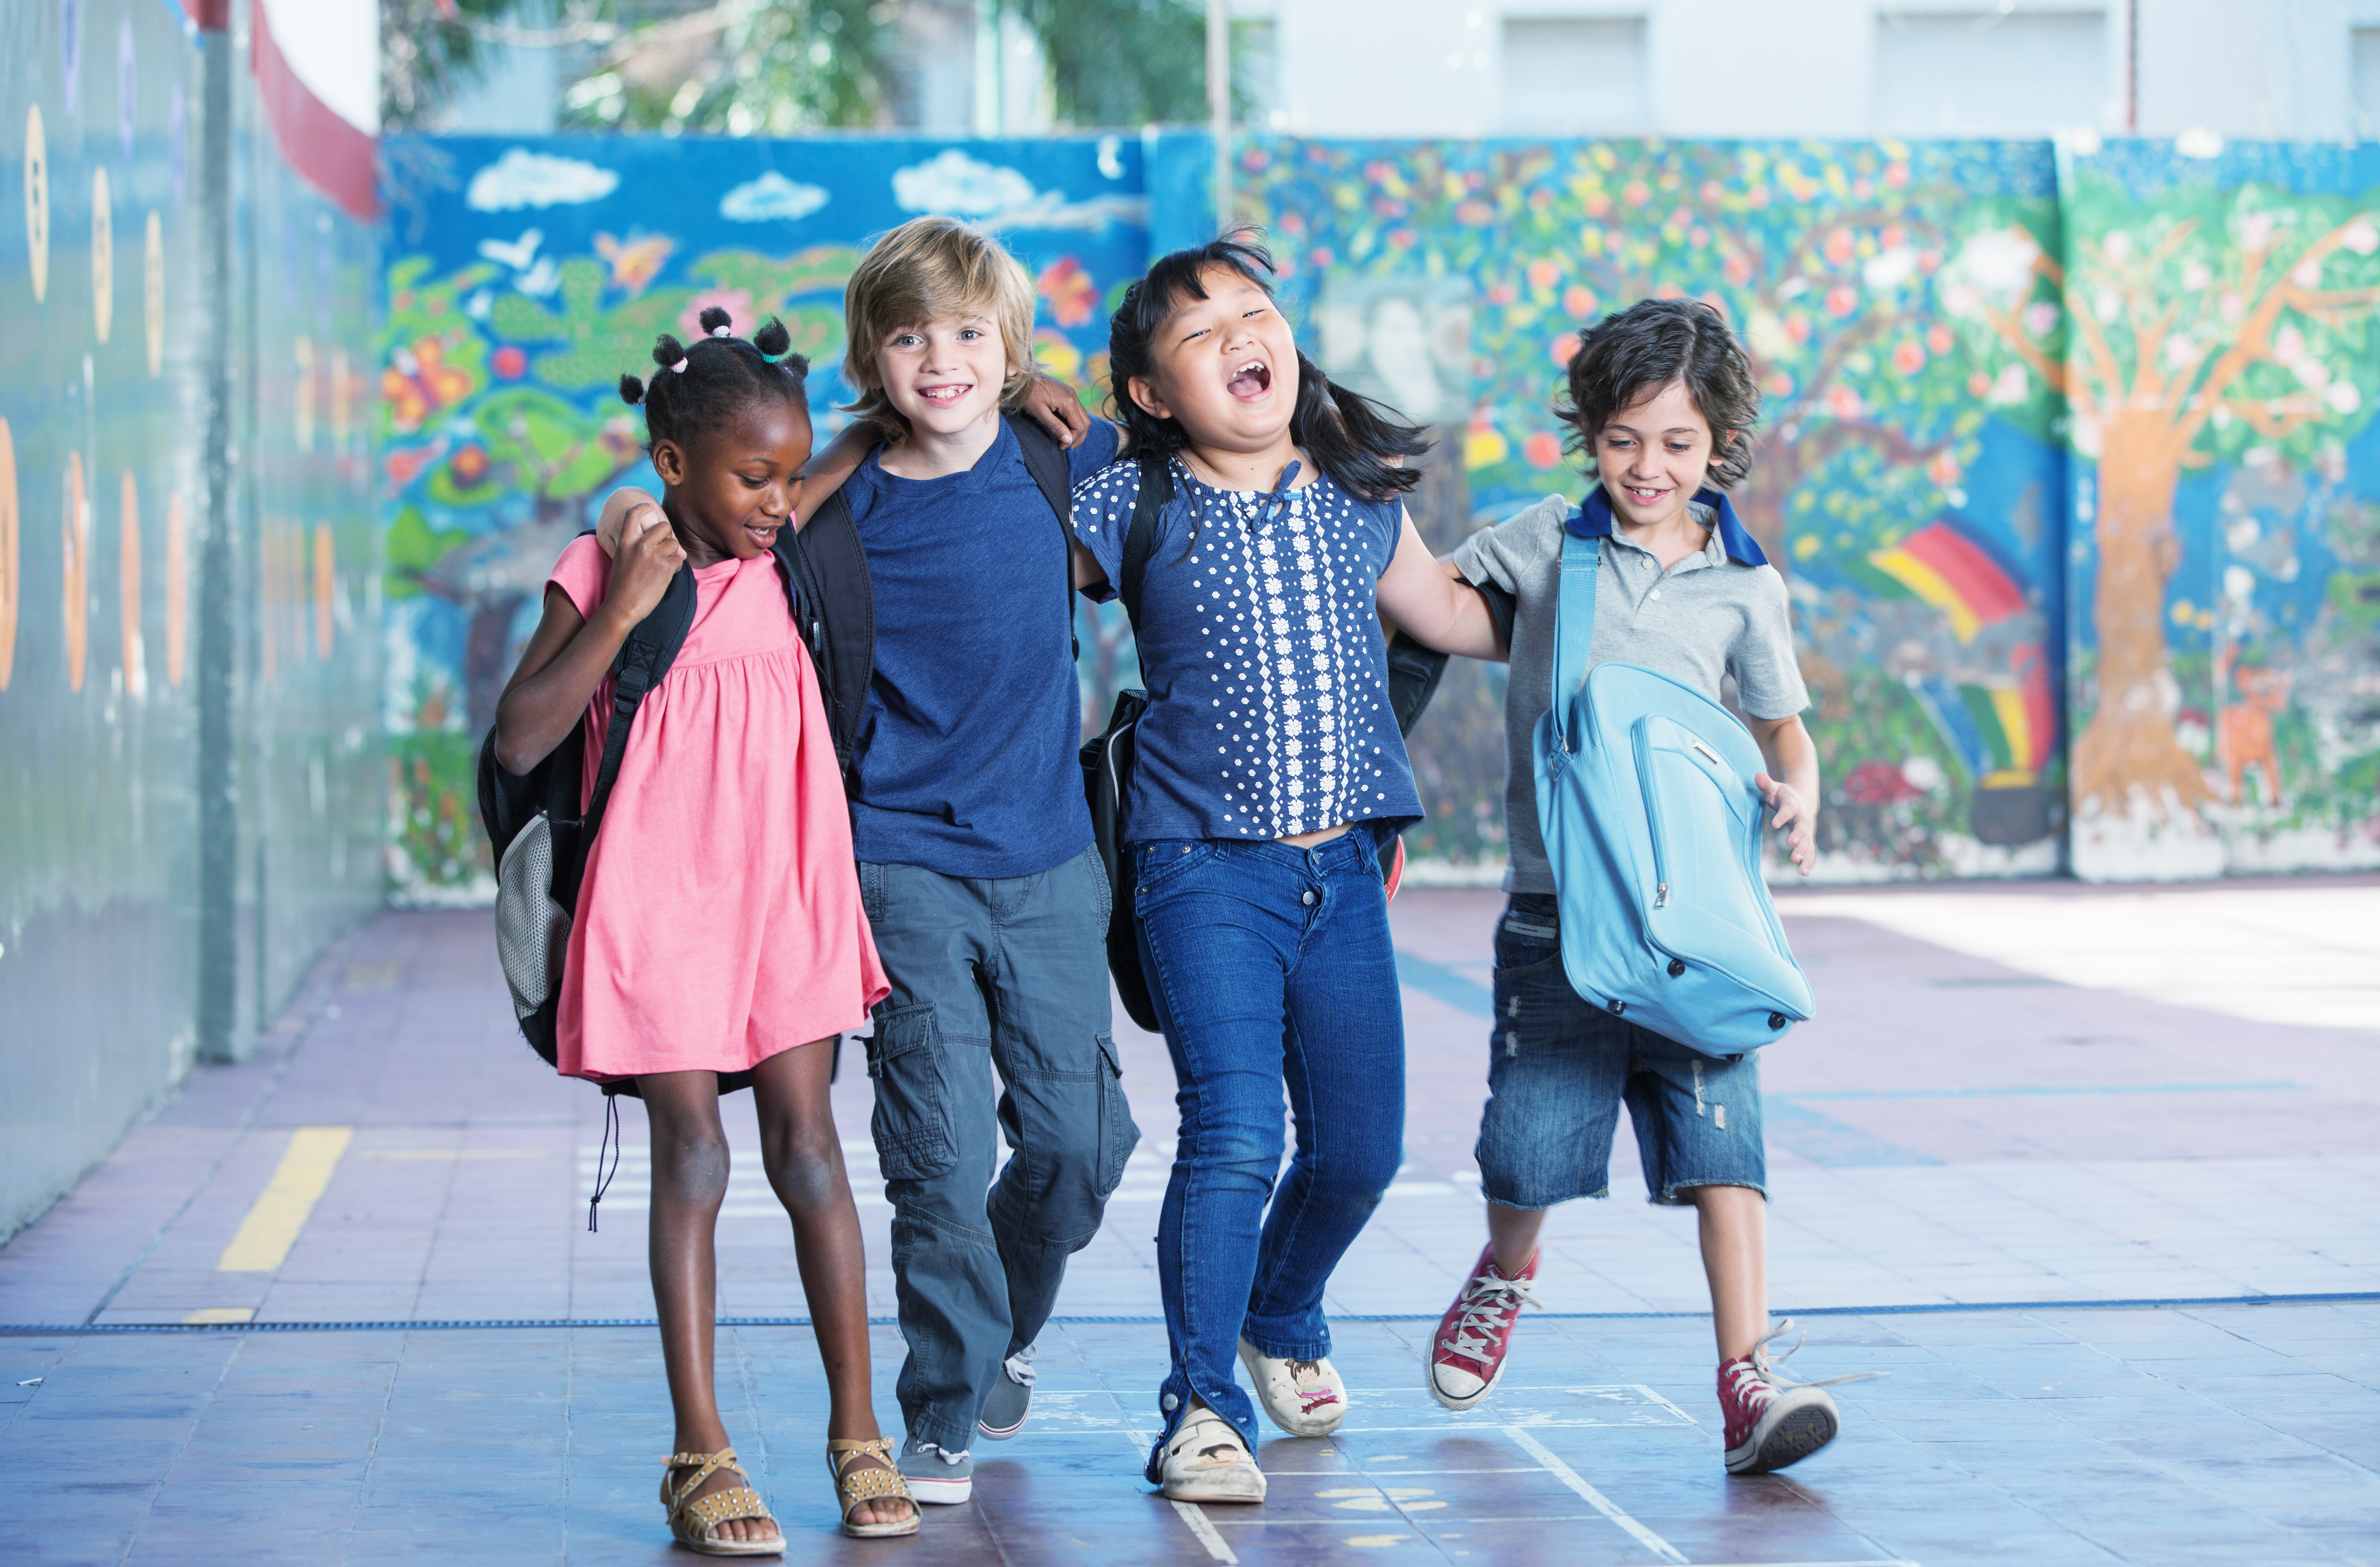 Happy kids embracing and smiling in the elementary schoolyard. Interracial friendship.